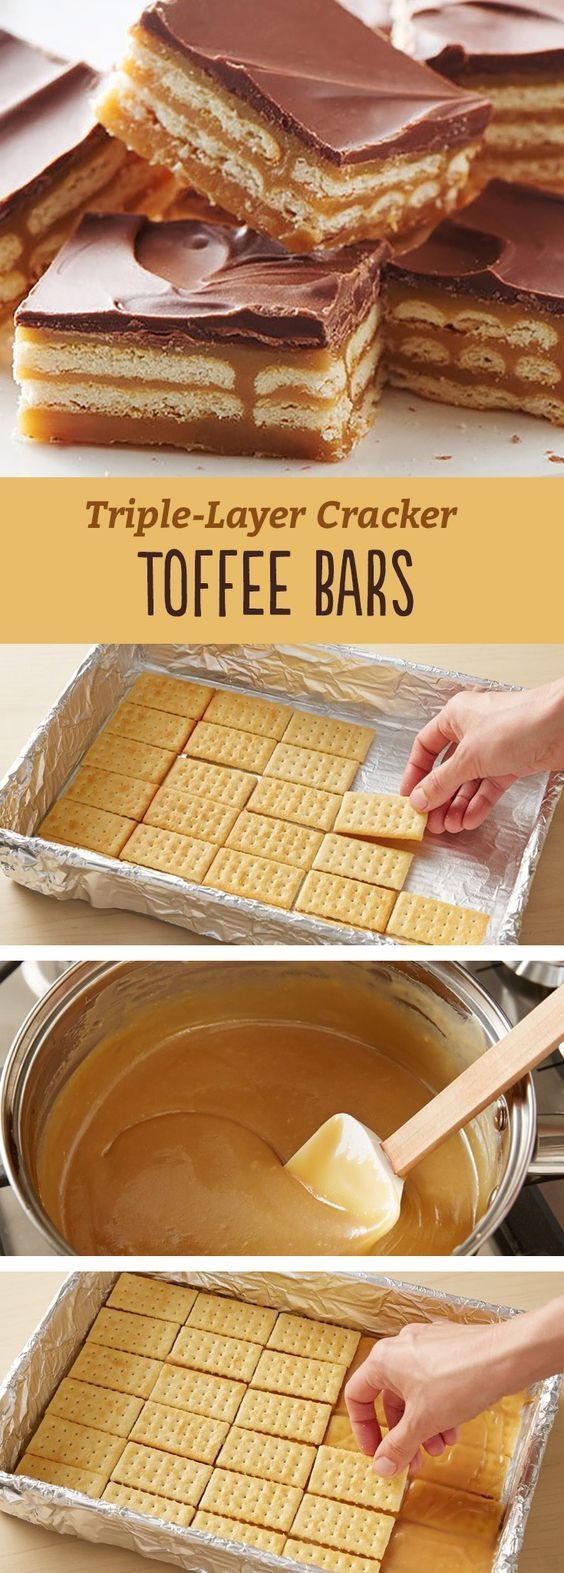 These easy caramel and chocolate layered cracker toffee bars are a twist on a traditional cracker toffee. AD